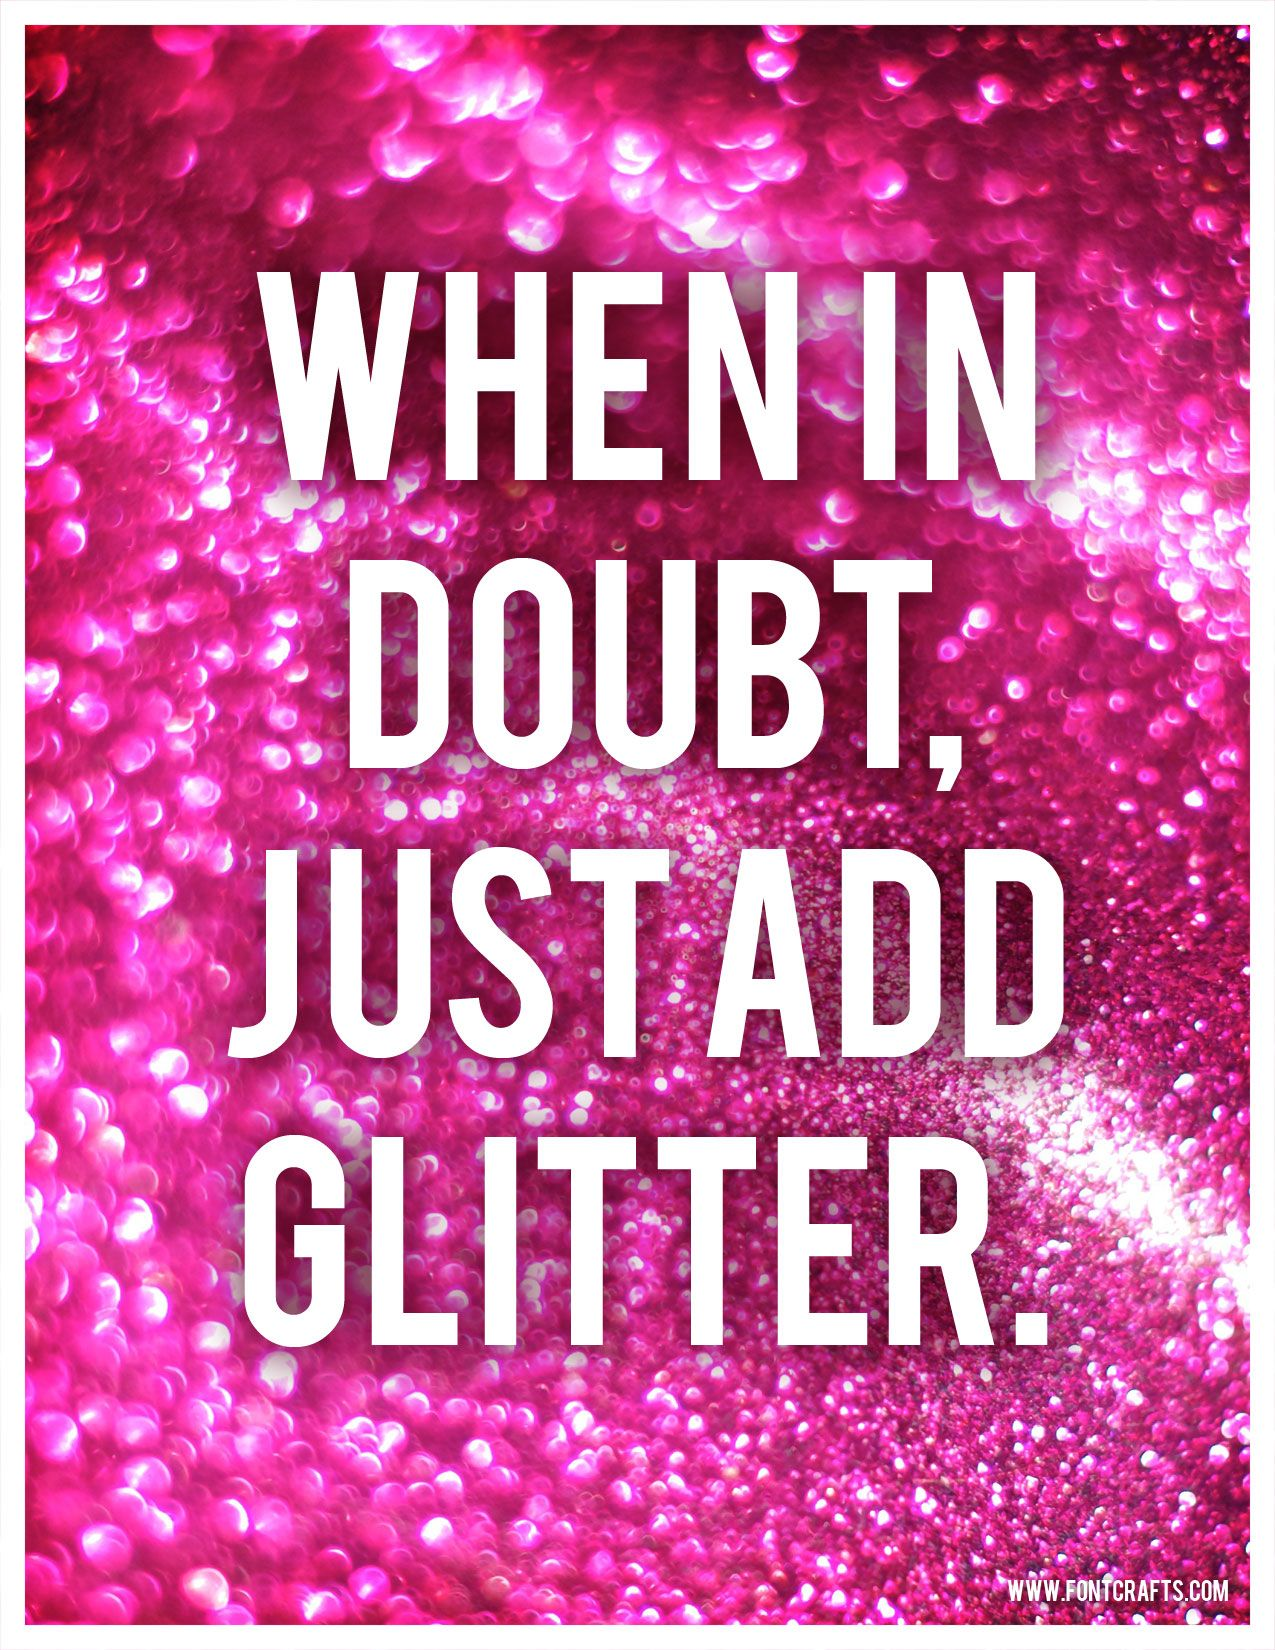 When in doubt, just add glitter printable quote art | Crafts